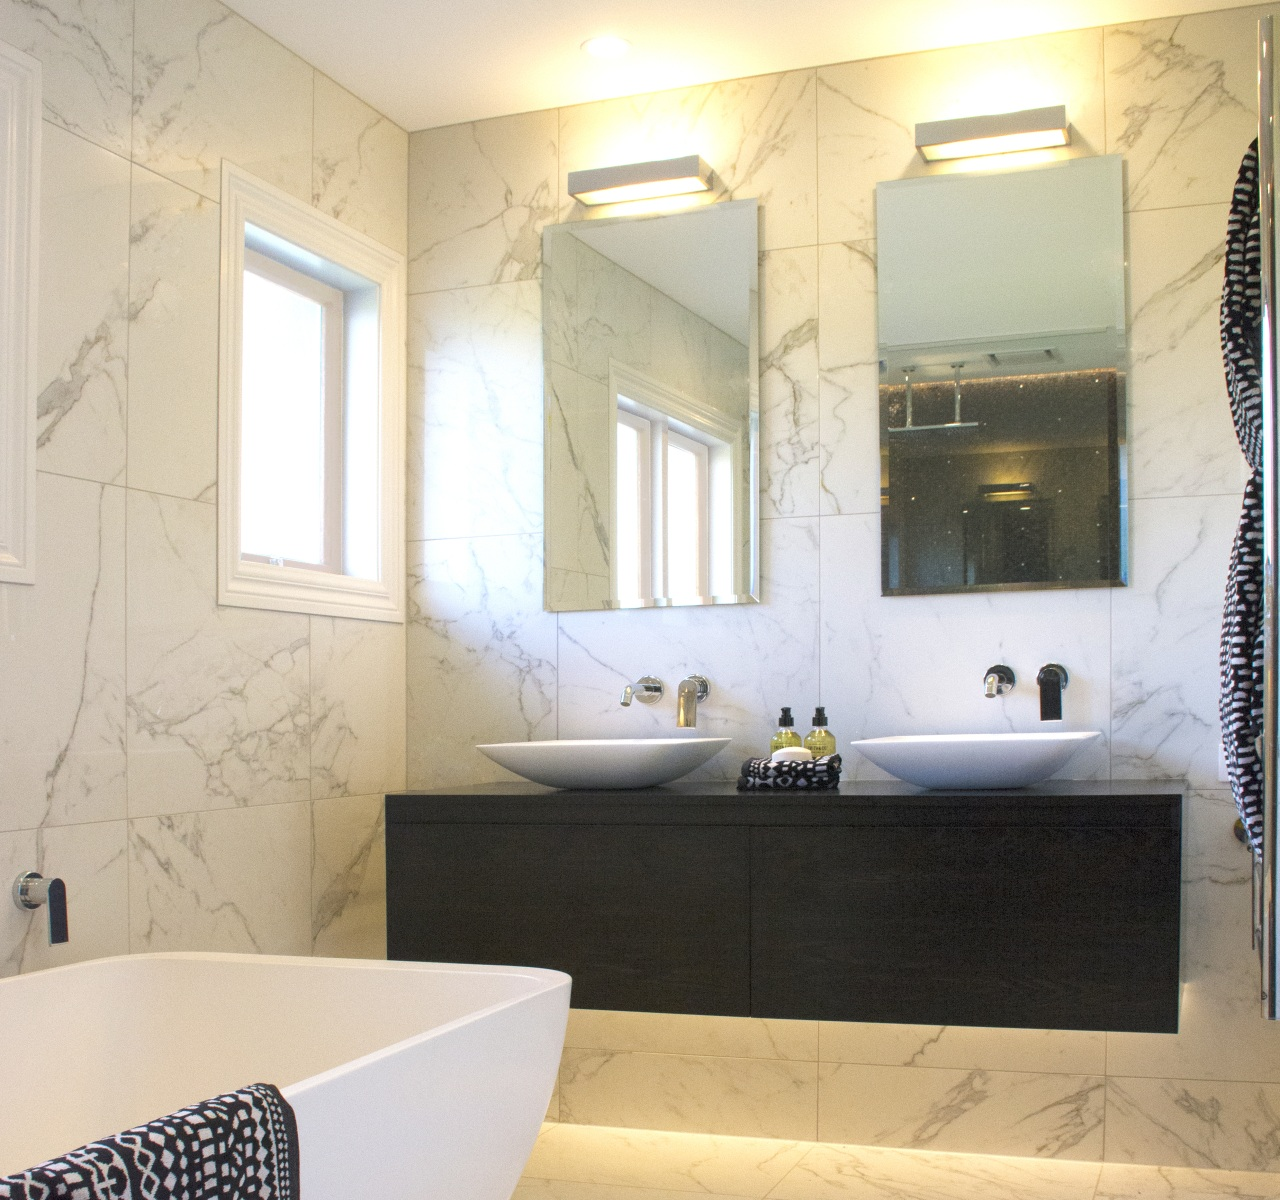 This family bathroom has a separate toilet room, architecture, bathroom, bathroom accessory, bathroom cabinet, bathtub, building, ceiling, ceramic, floor, flooring, furniture, home, house, interior design, lighting, material property, mirror, plumbing fixture, property, real estate, room, sink, tap, tile, wall, white